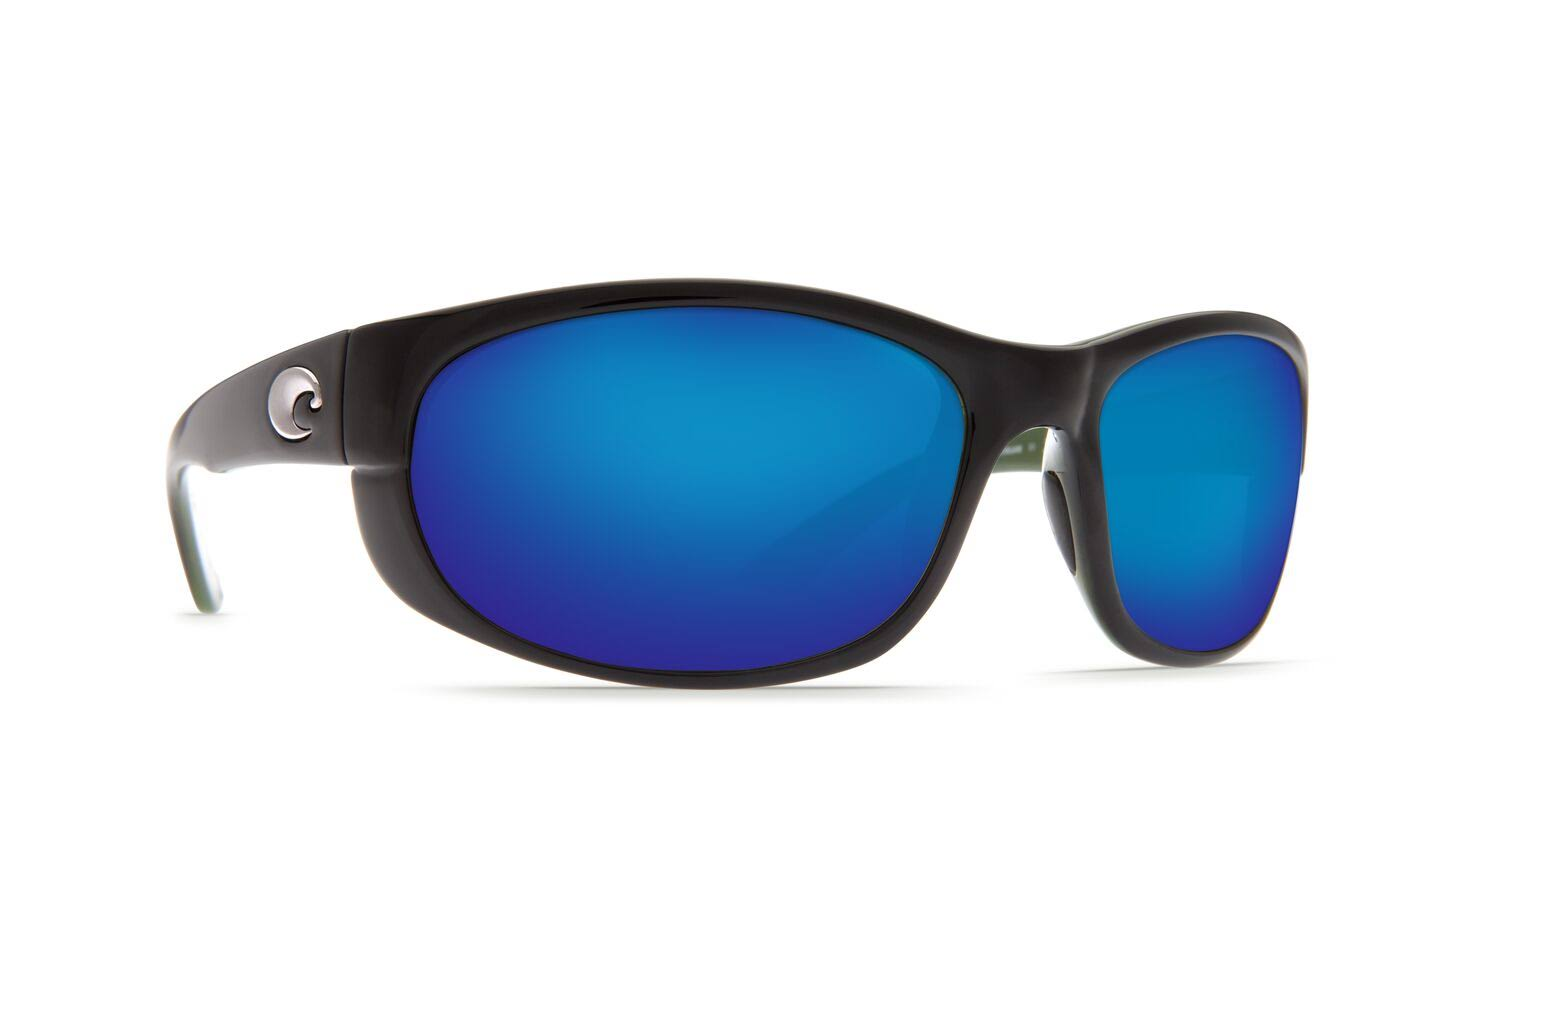 Costa Del Mar Howler Sunglasses - Black Frame, Blue Mirror 580G Lens